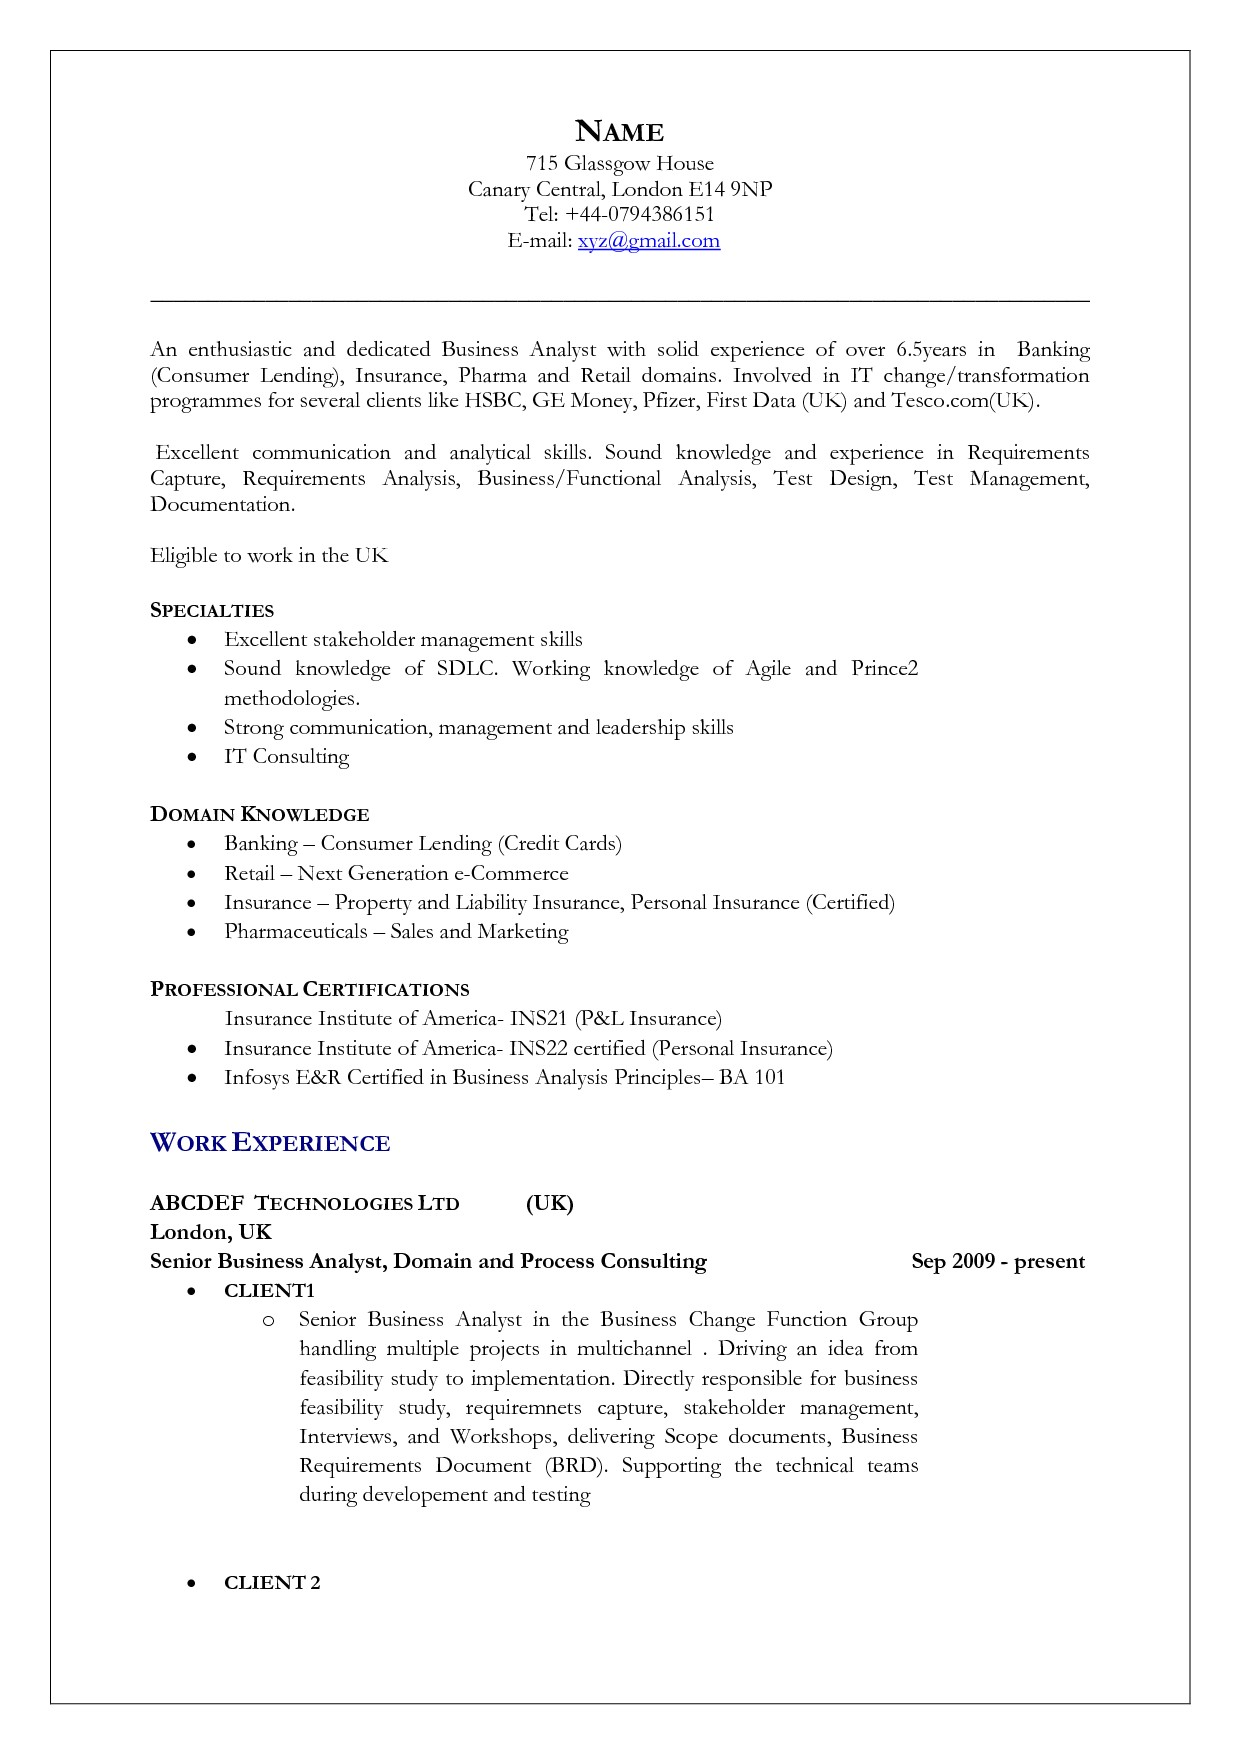 Uk Resume Template Uk Resume format Free Excel Templates